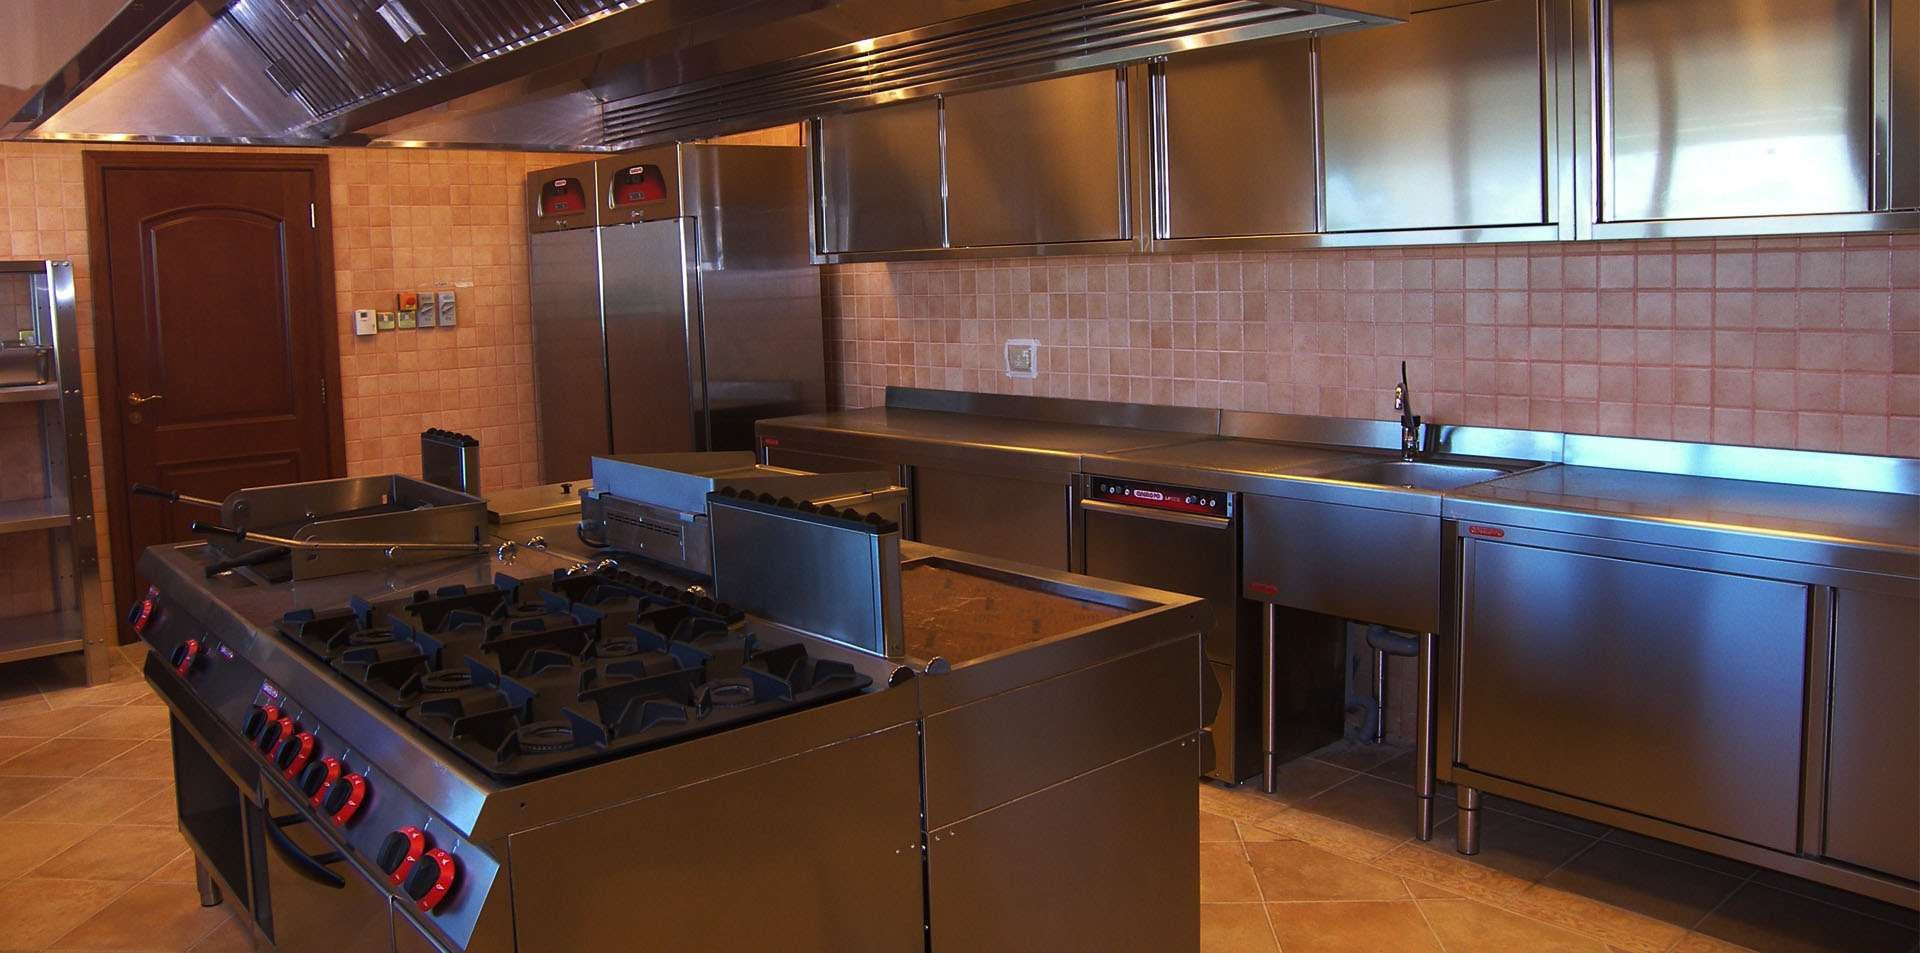 kitchen design,kitchen diy,kitchen equipment,kitchen hotel